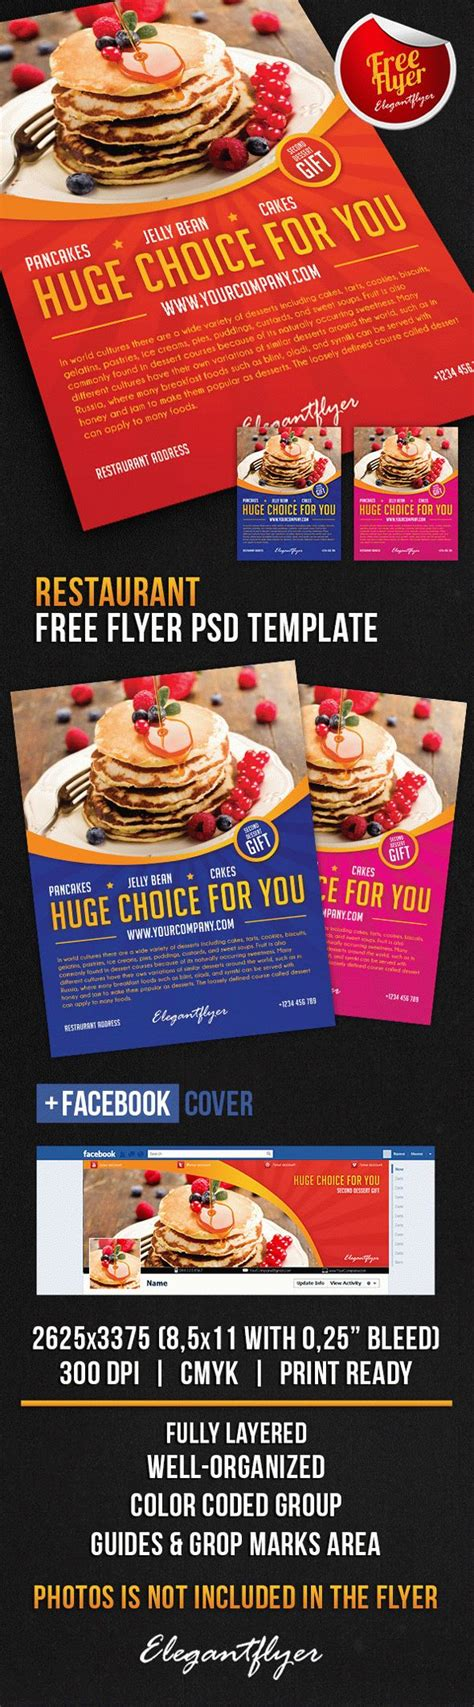 free restaurant flyer templates restaurant free flyer psd template cover